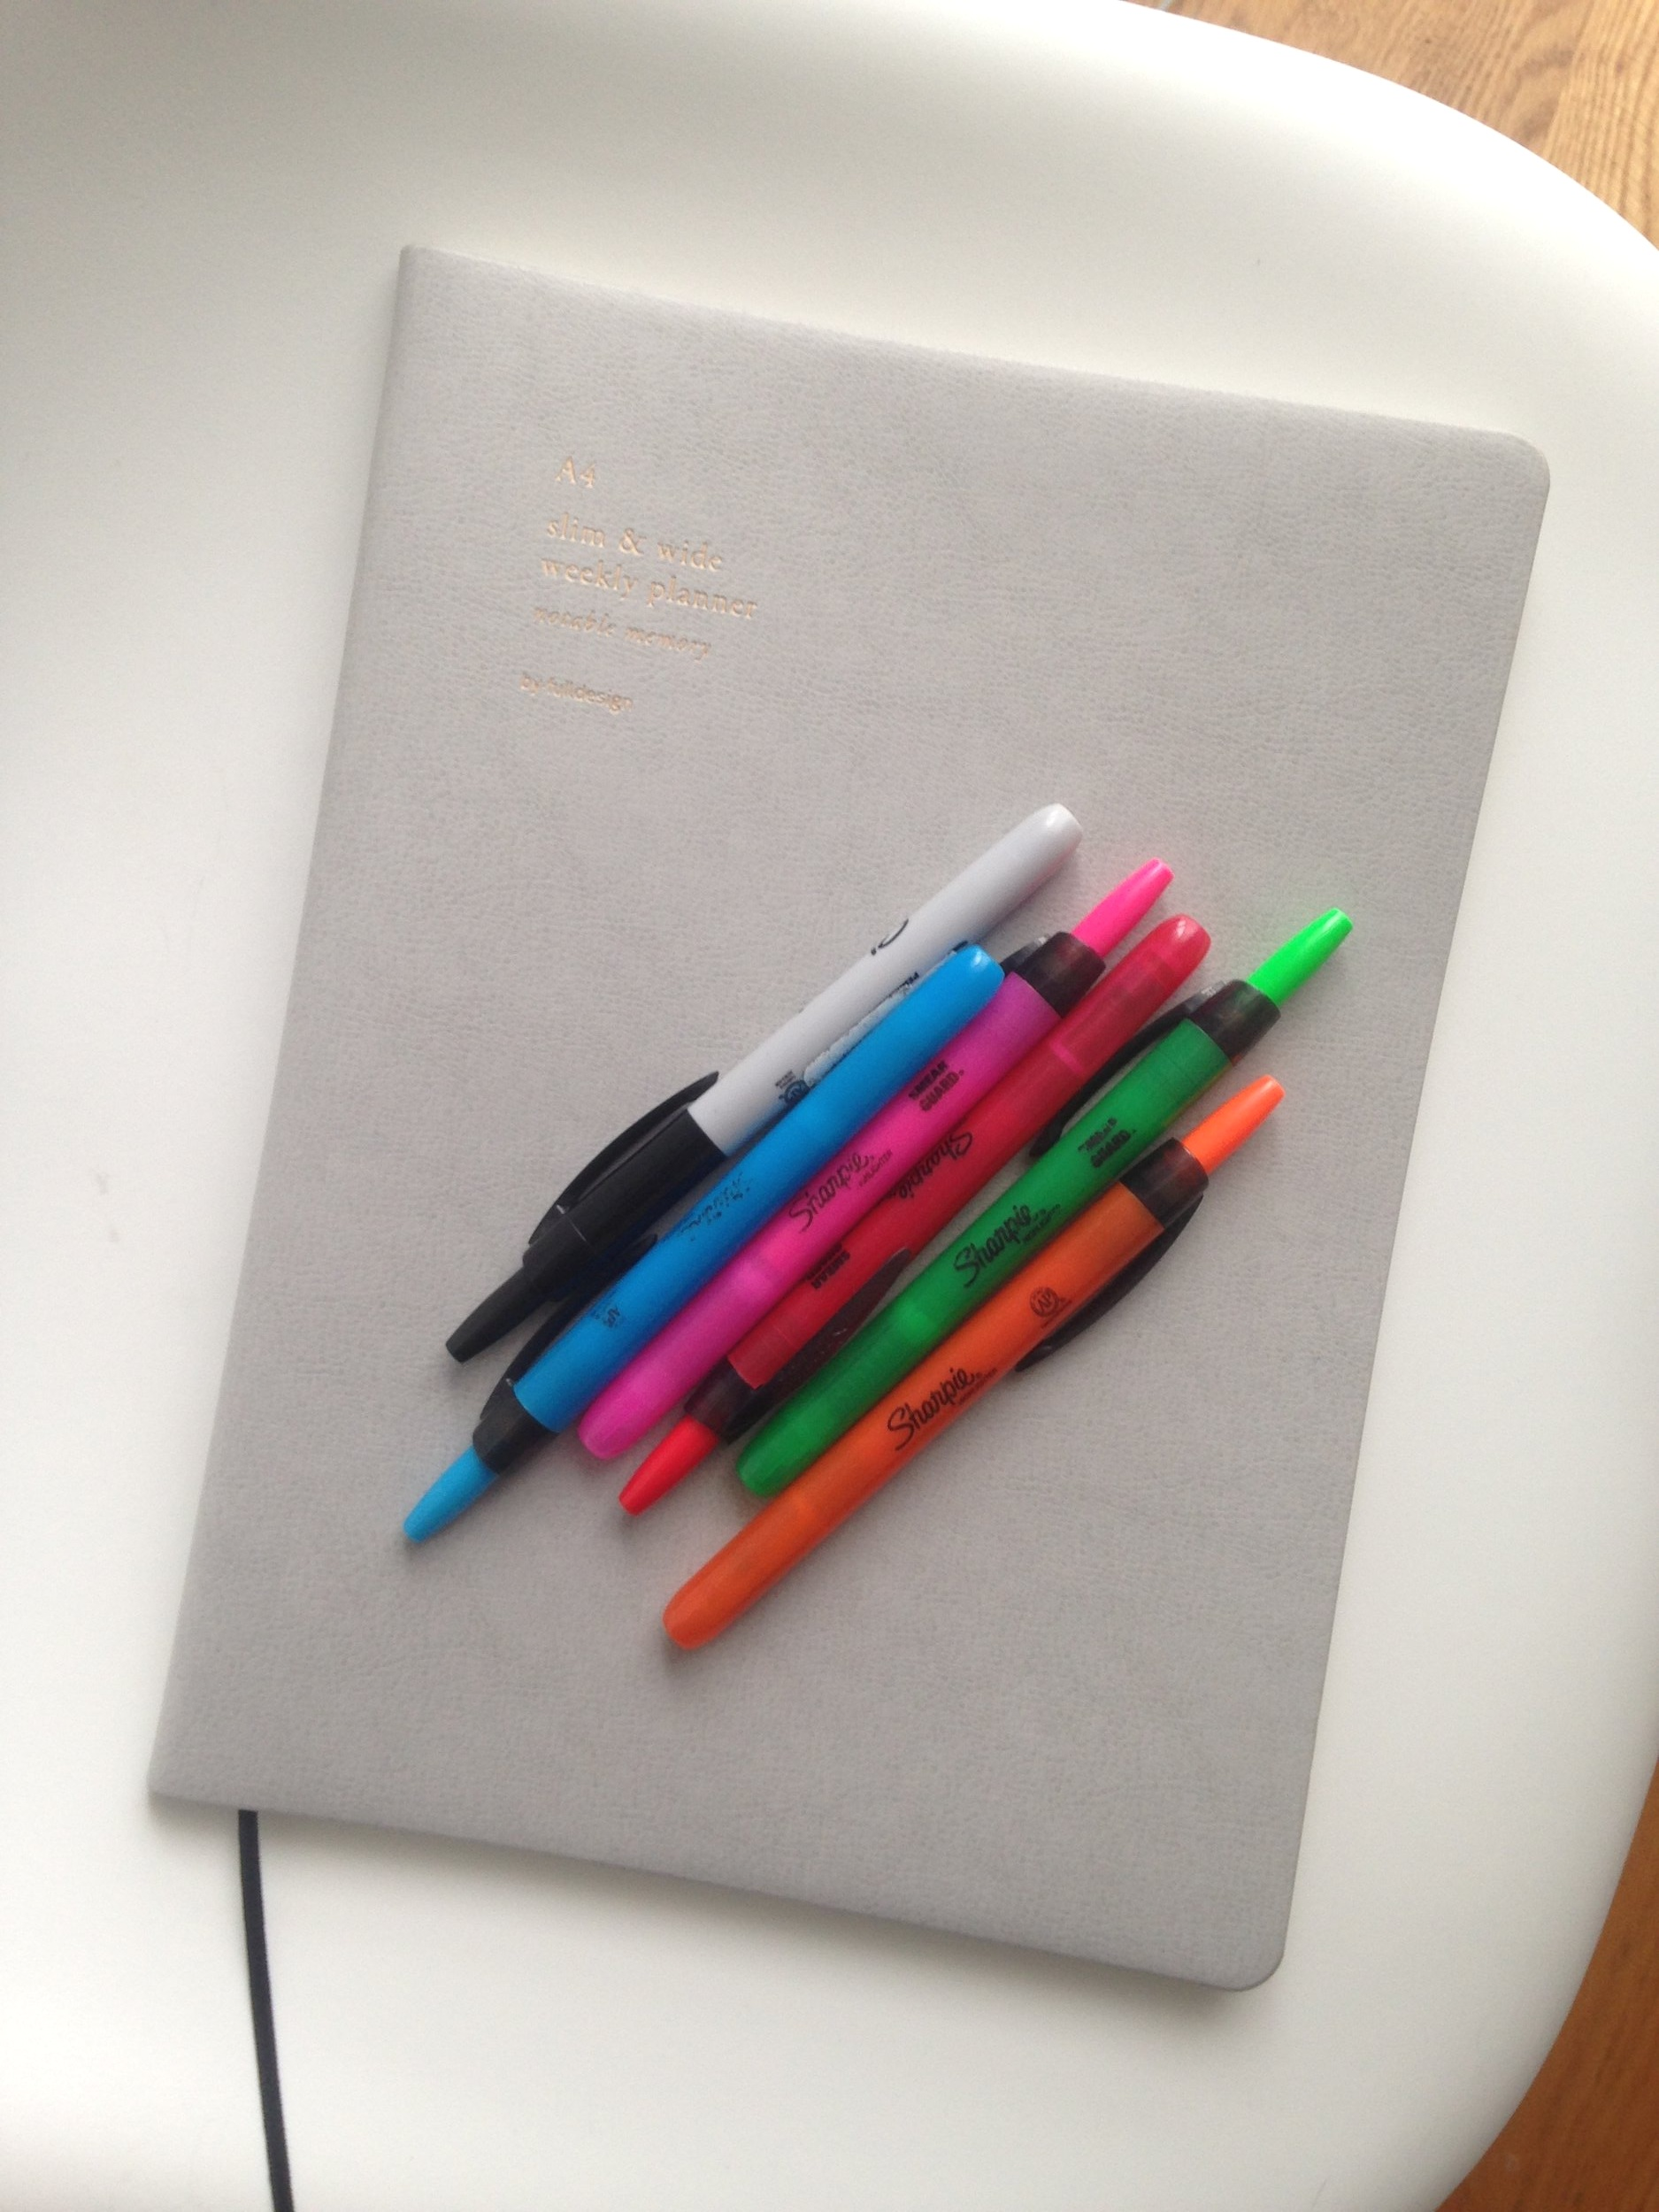 Planner, highlighters, and fancy pens